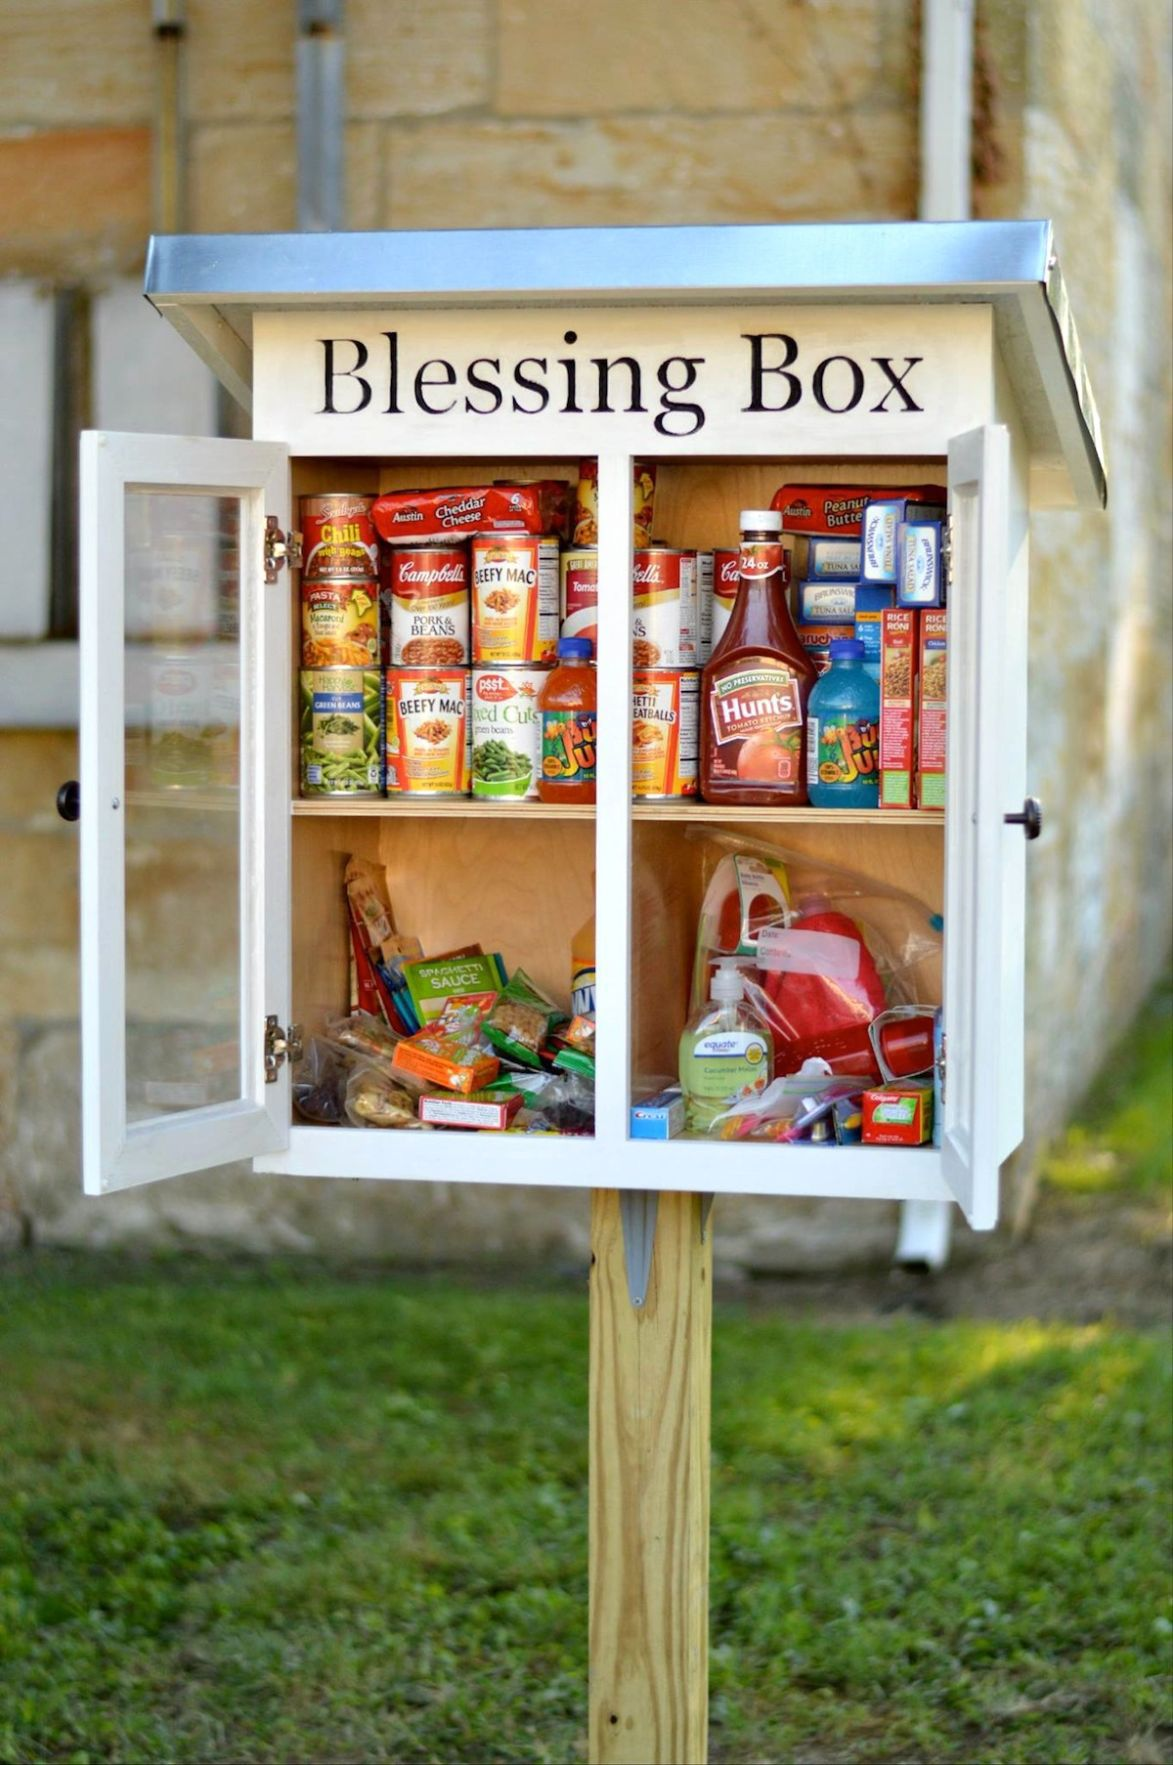 A Blessing To Those In Need Blessing Box Provides Way To